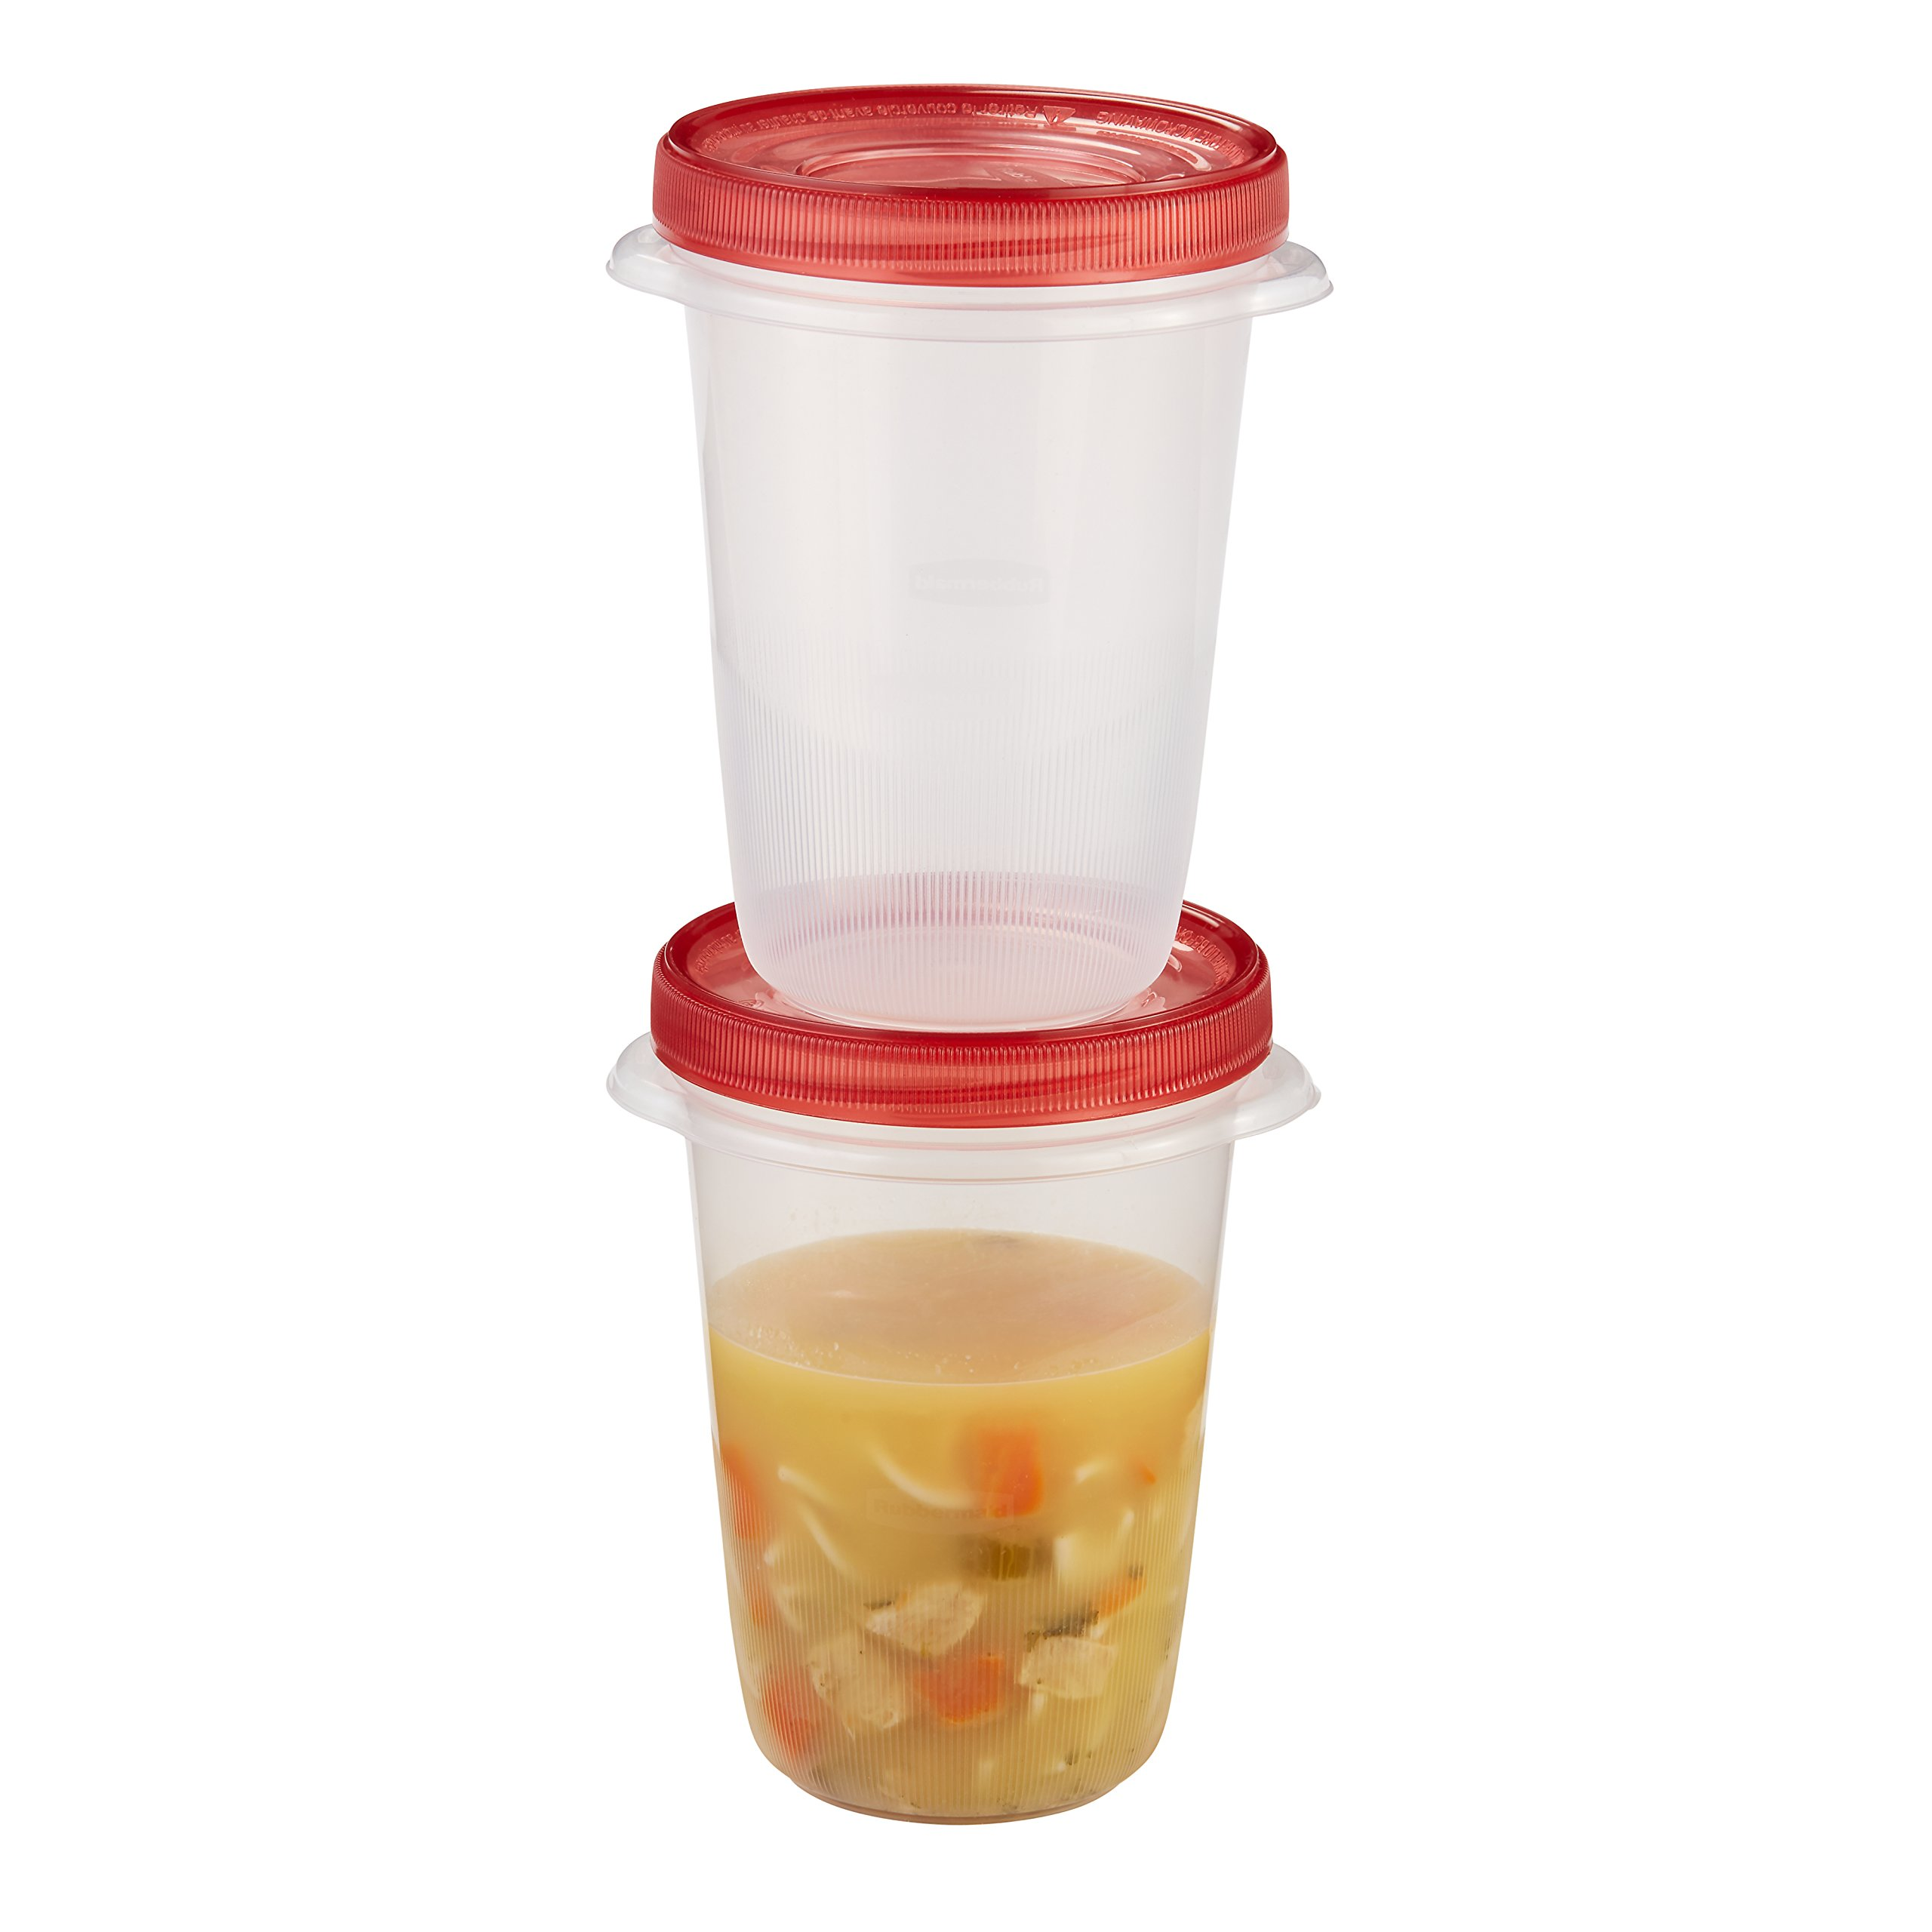 Rubbermaid TakeAlongs 4-Cup Twist & Seal Food Storage Containers, 2-Pack, Chili Red